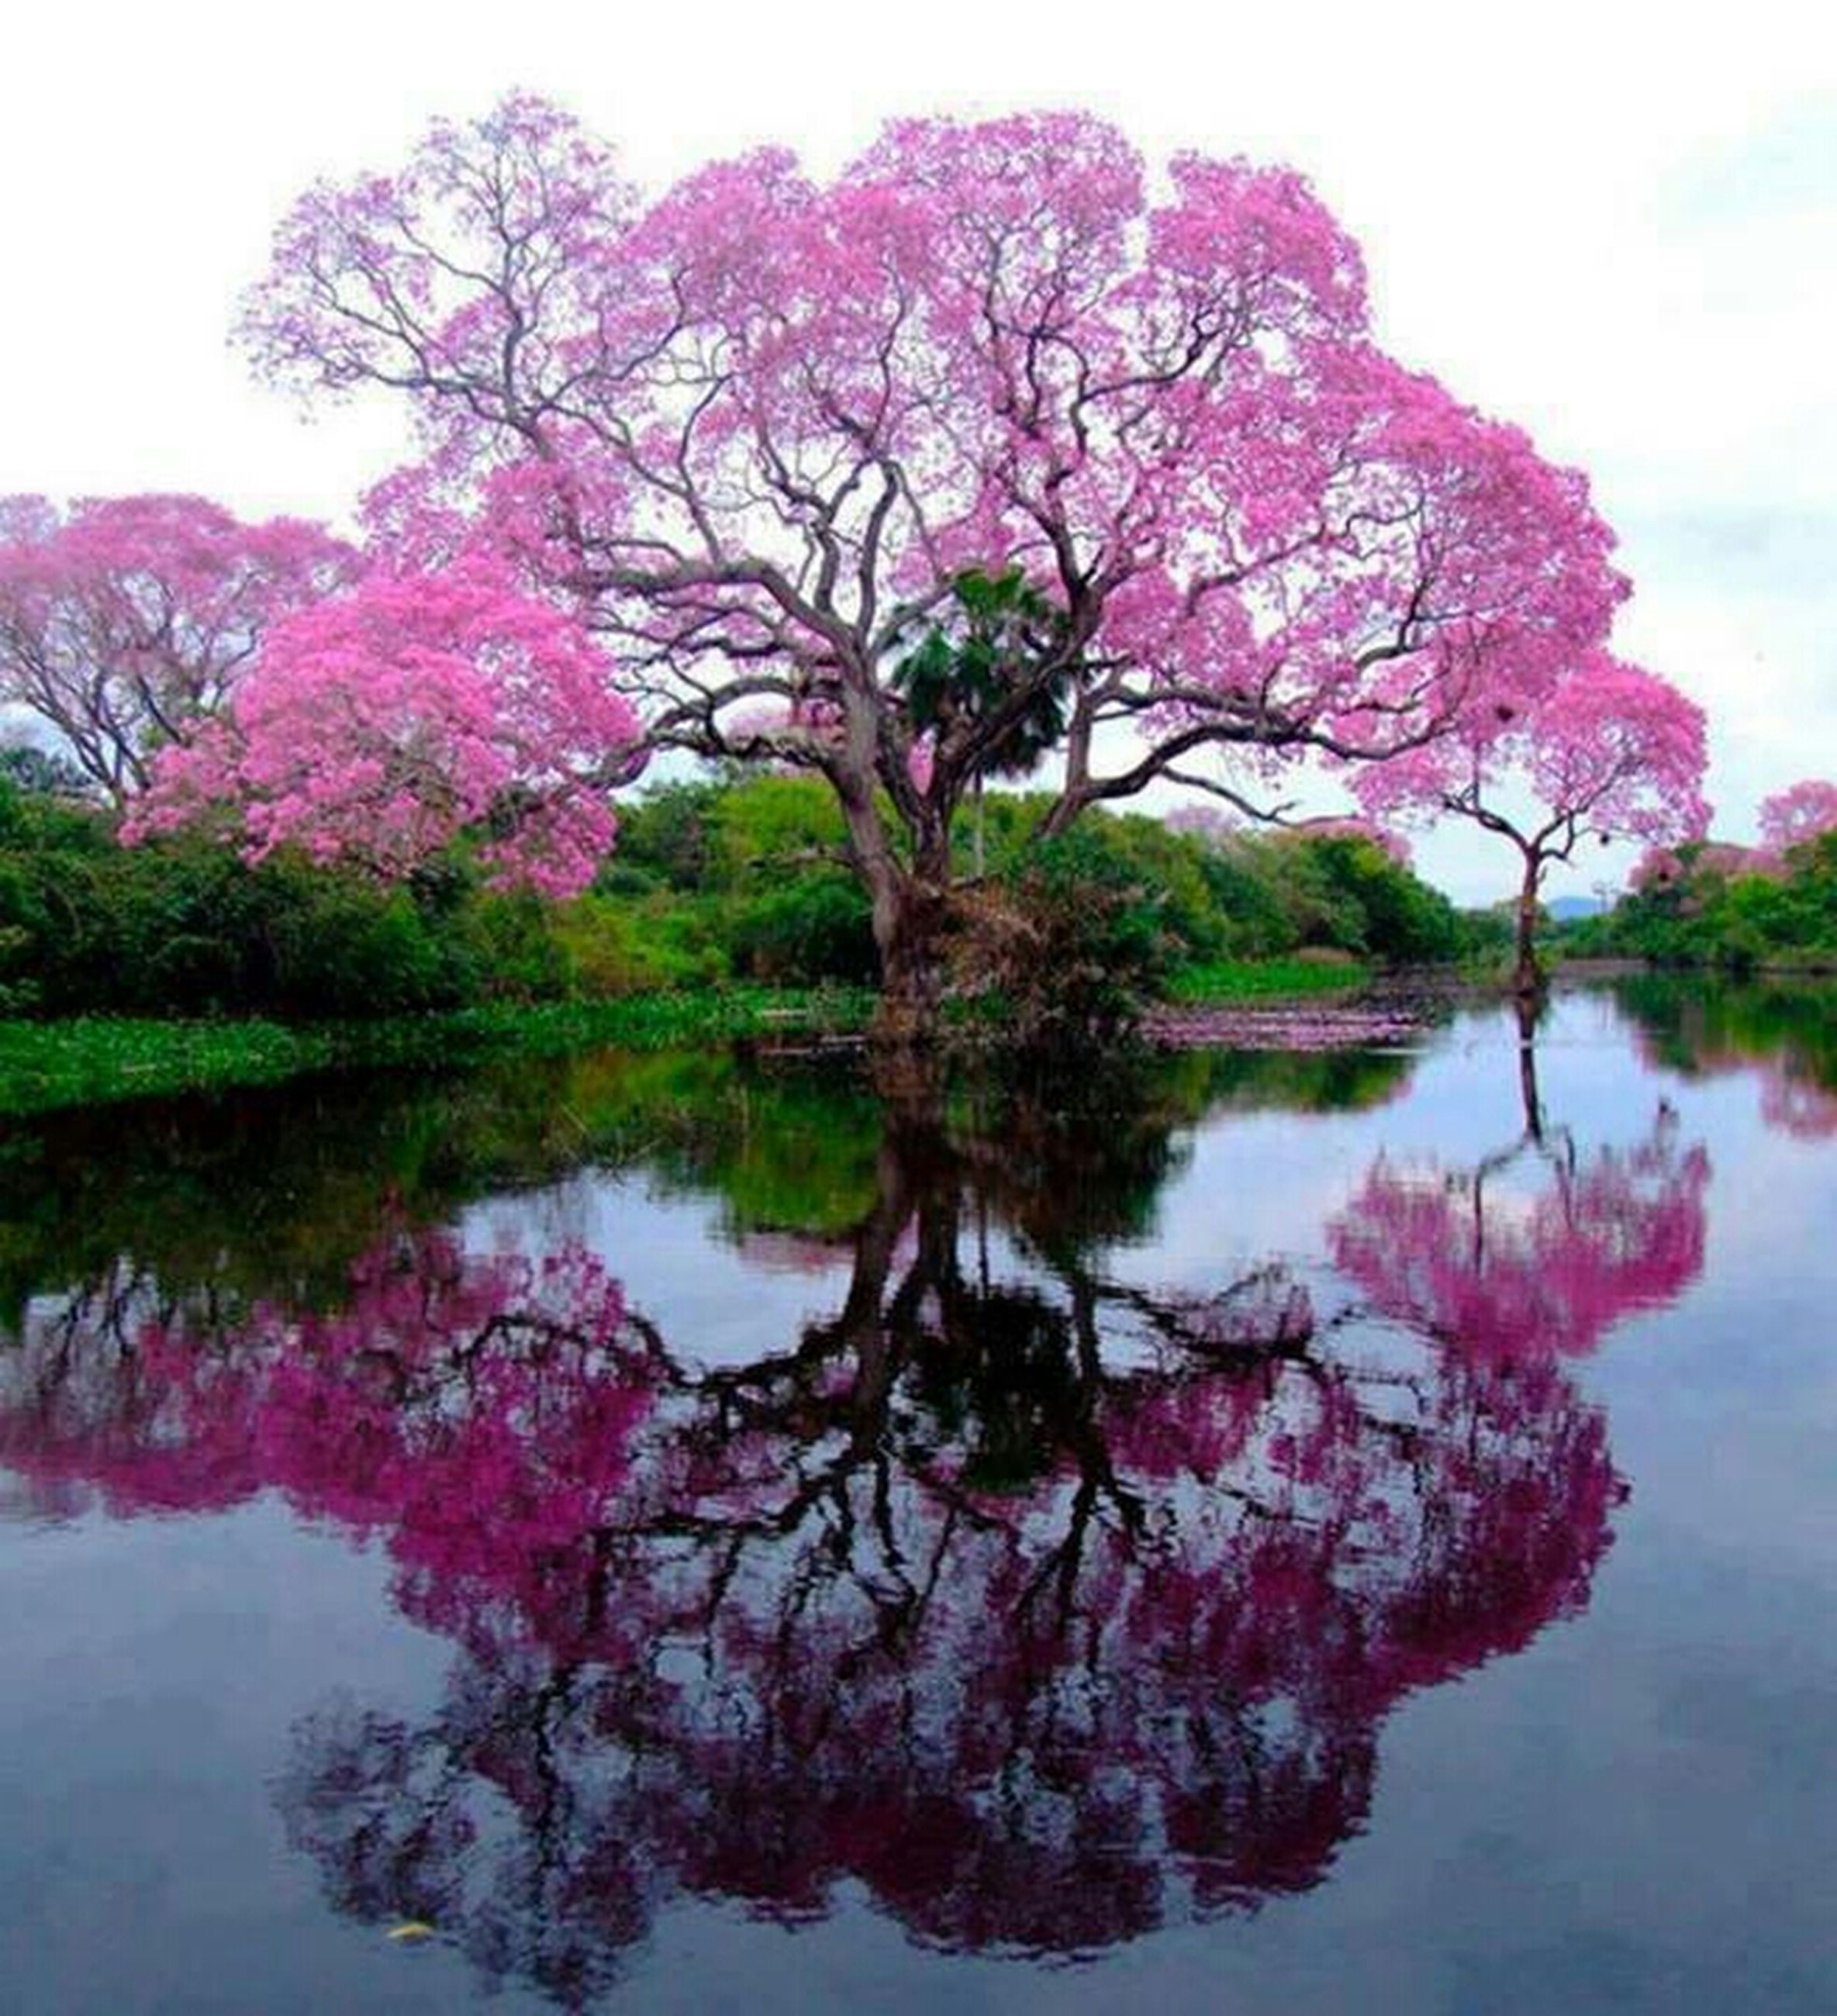 tree, water, reflection, flower, beauty in nature, pink color, lake, branch, tranquility, tranquil scene, nature, growth, sky, scenics, waterfront, river, freshness, day, outdoors, blossom